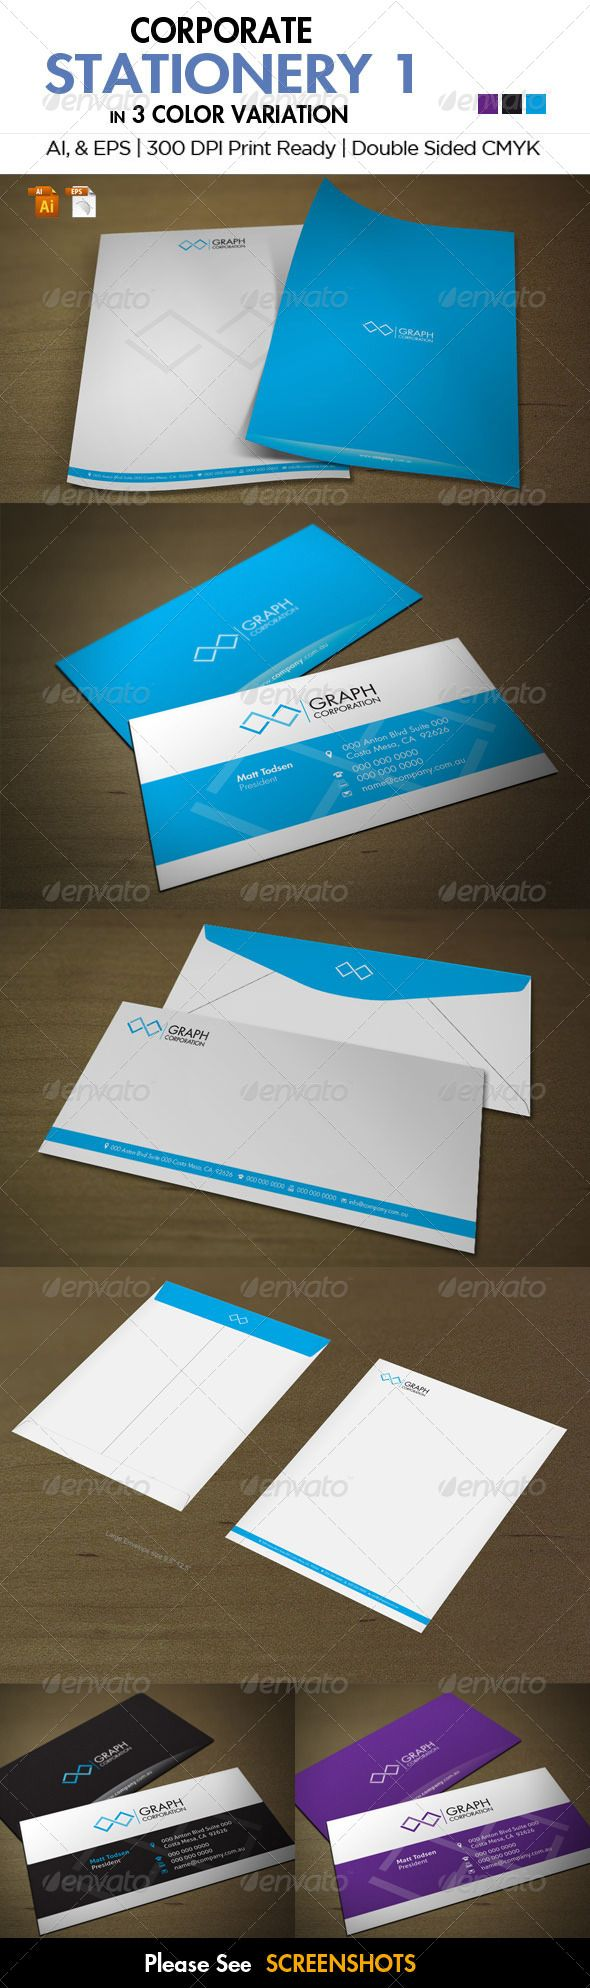 Corporate stationery 1 business cards fonts and print templates reheart Image collections